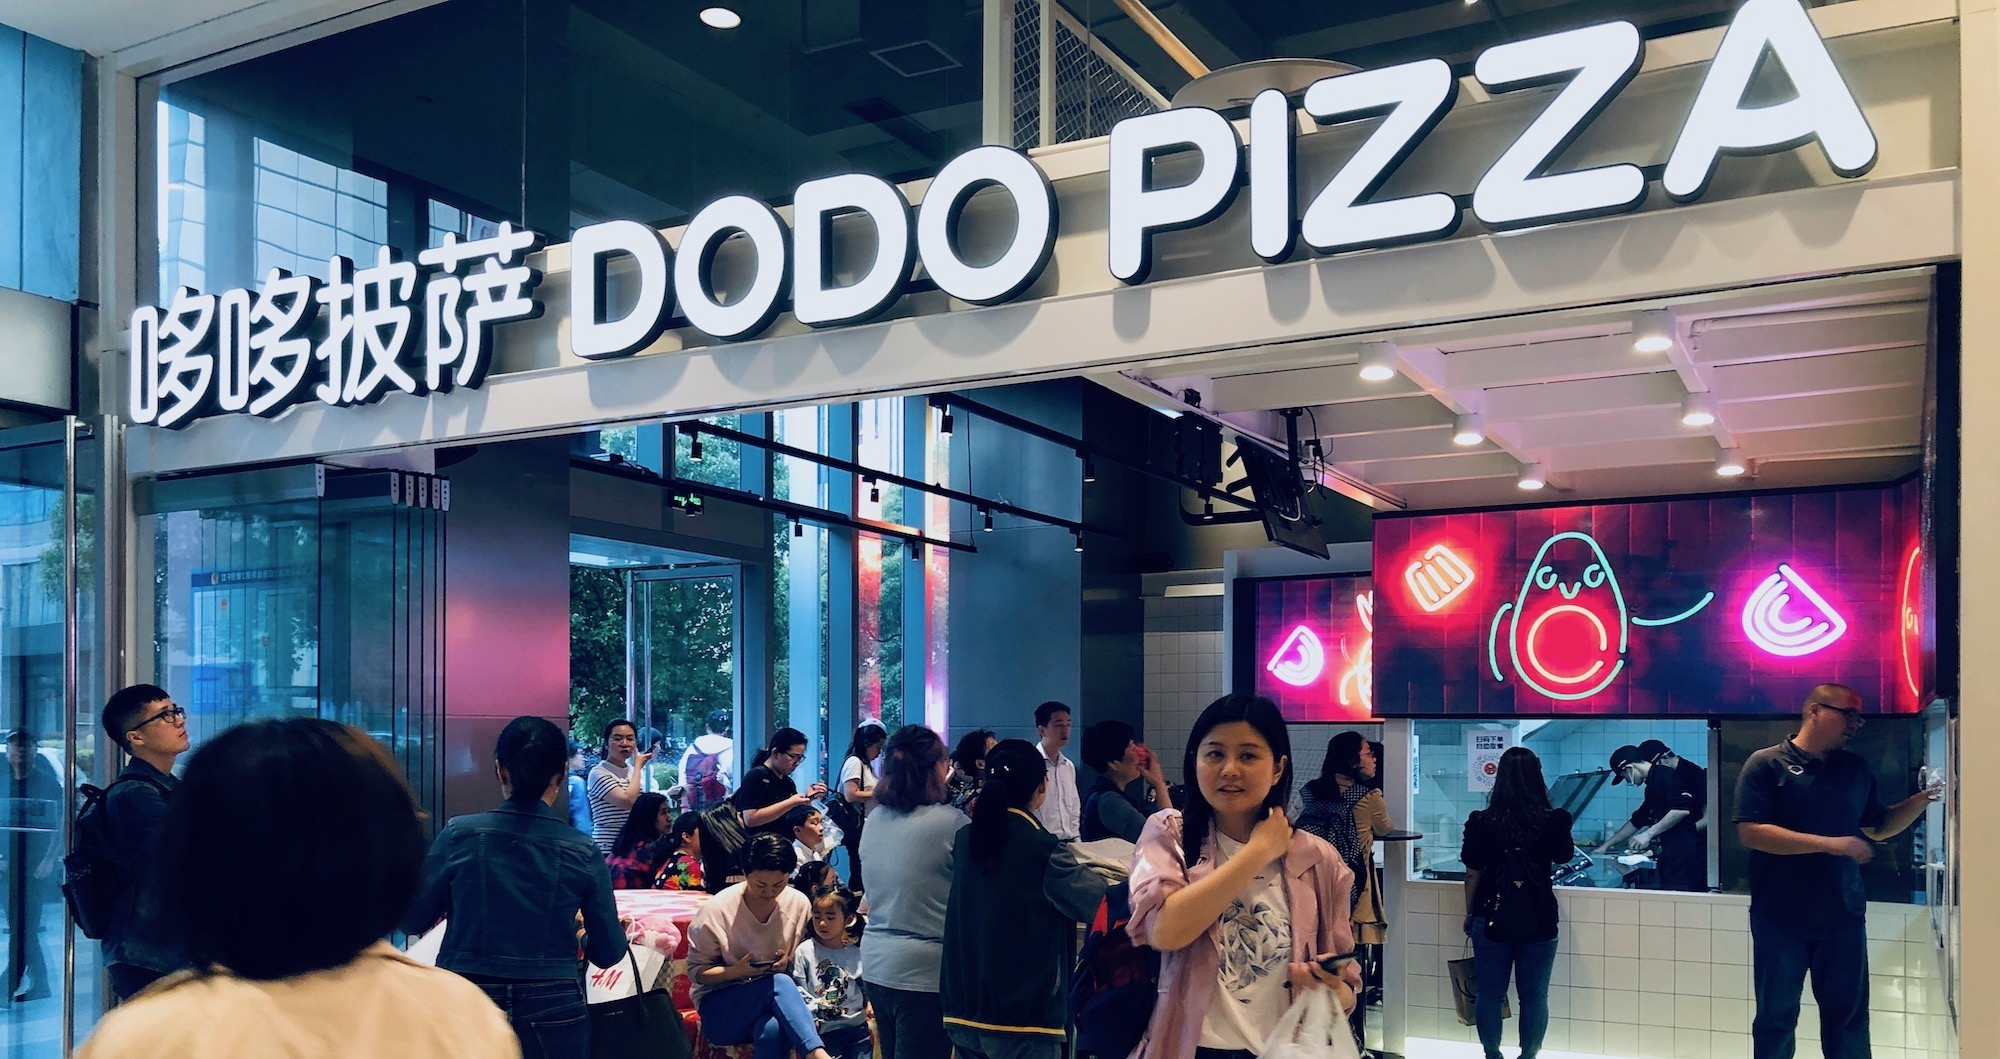 Dodo Pizza in China: reinventing the pizza business for the world's largest market